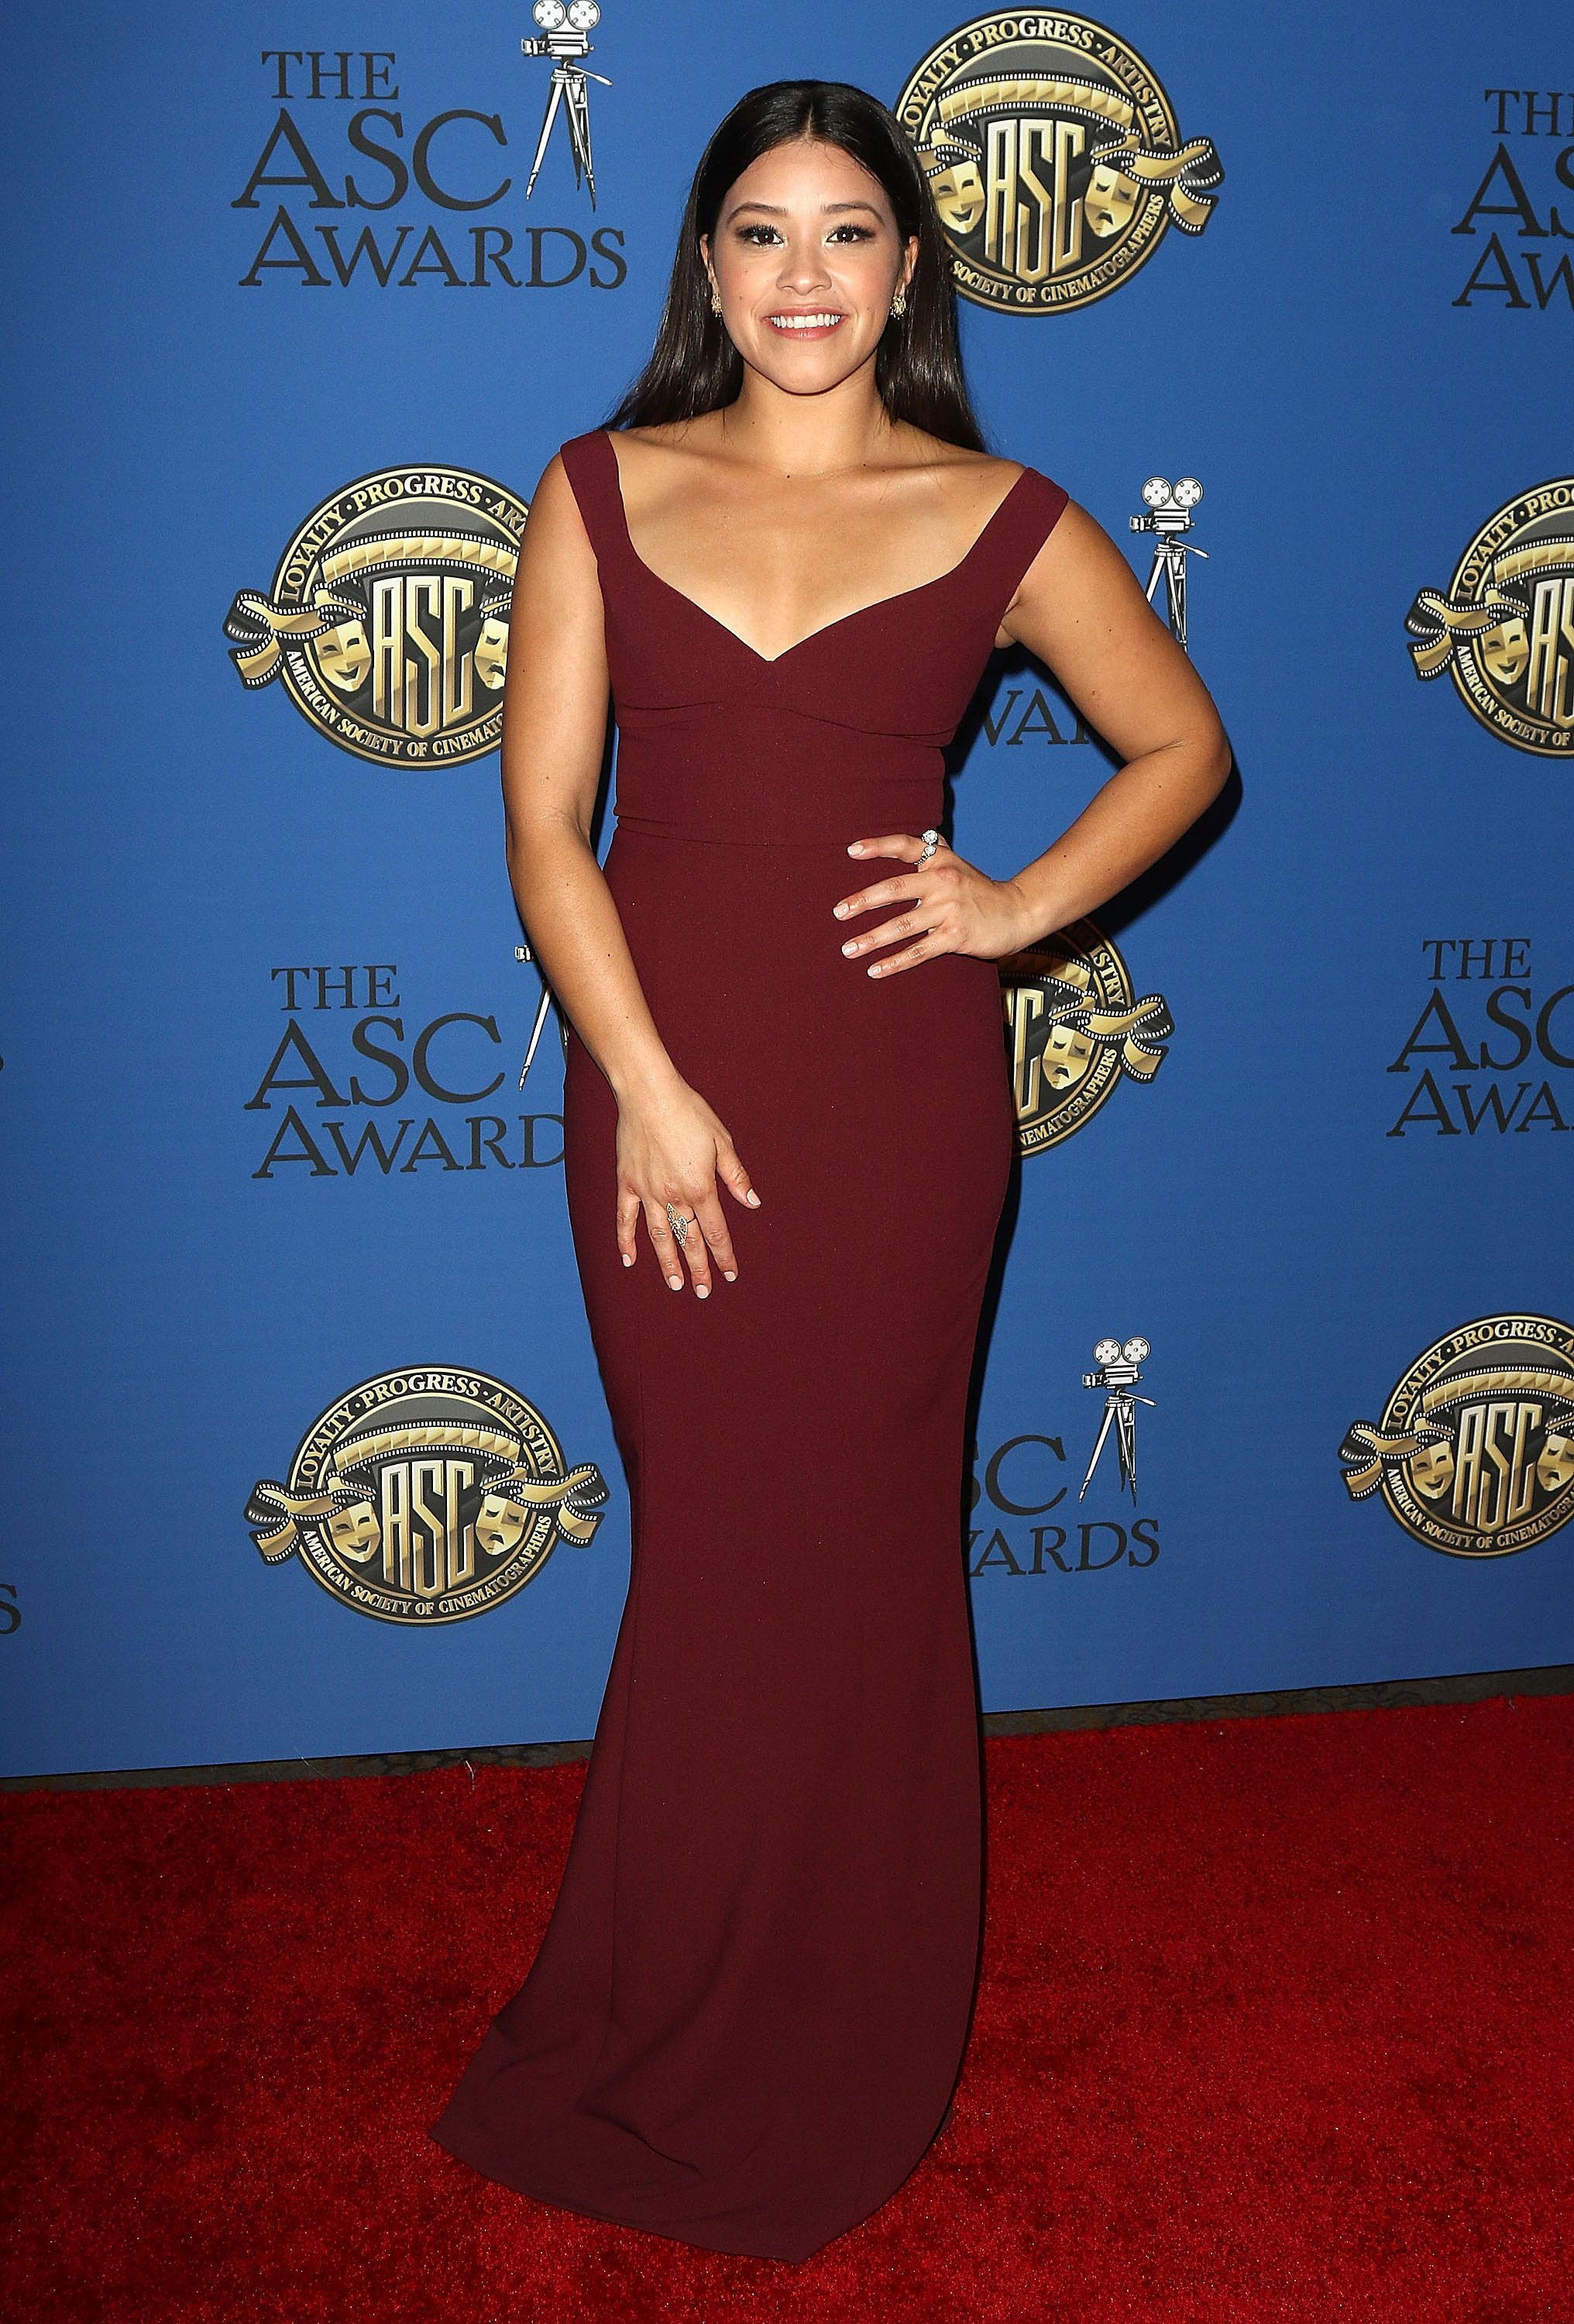 Gina Rodriguez at the ASC Awards